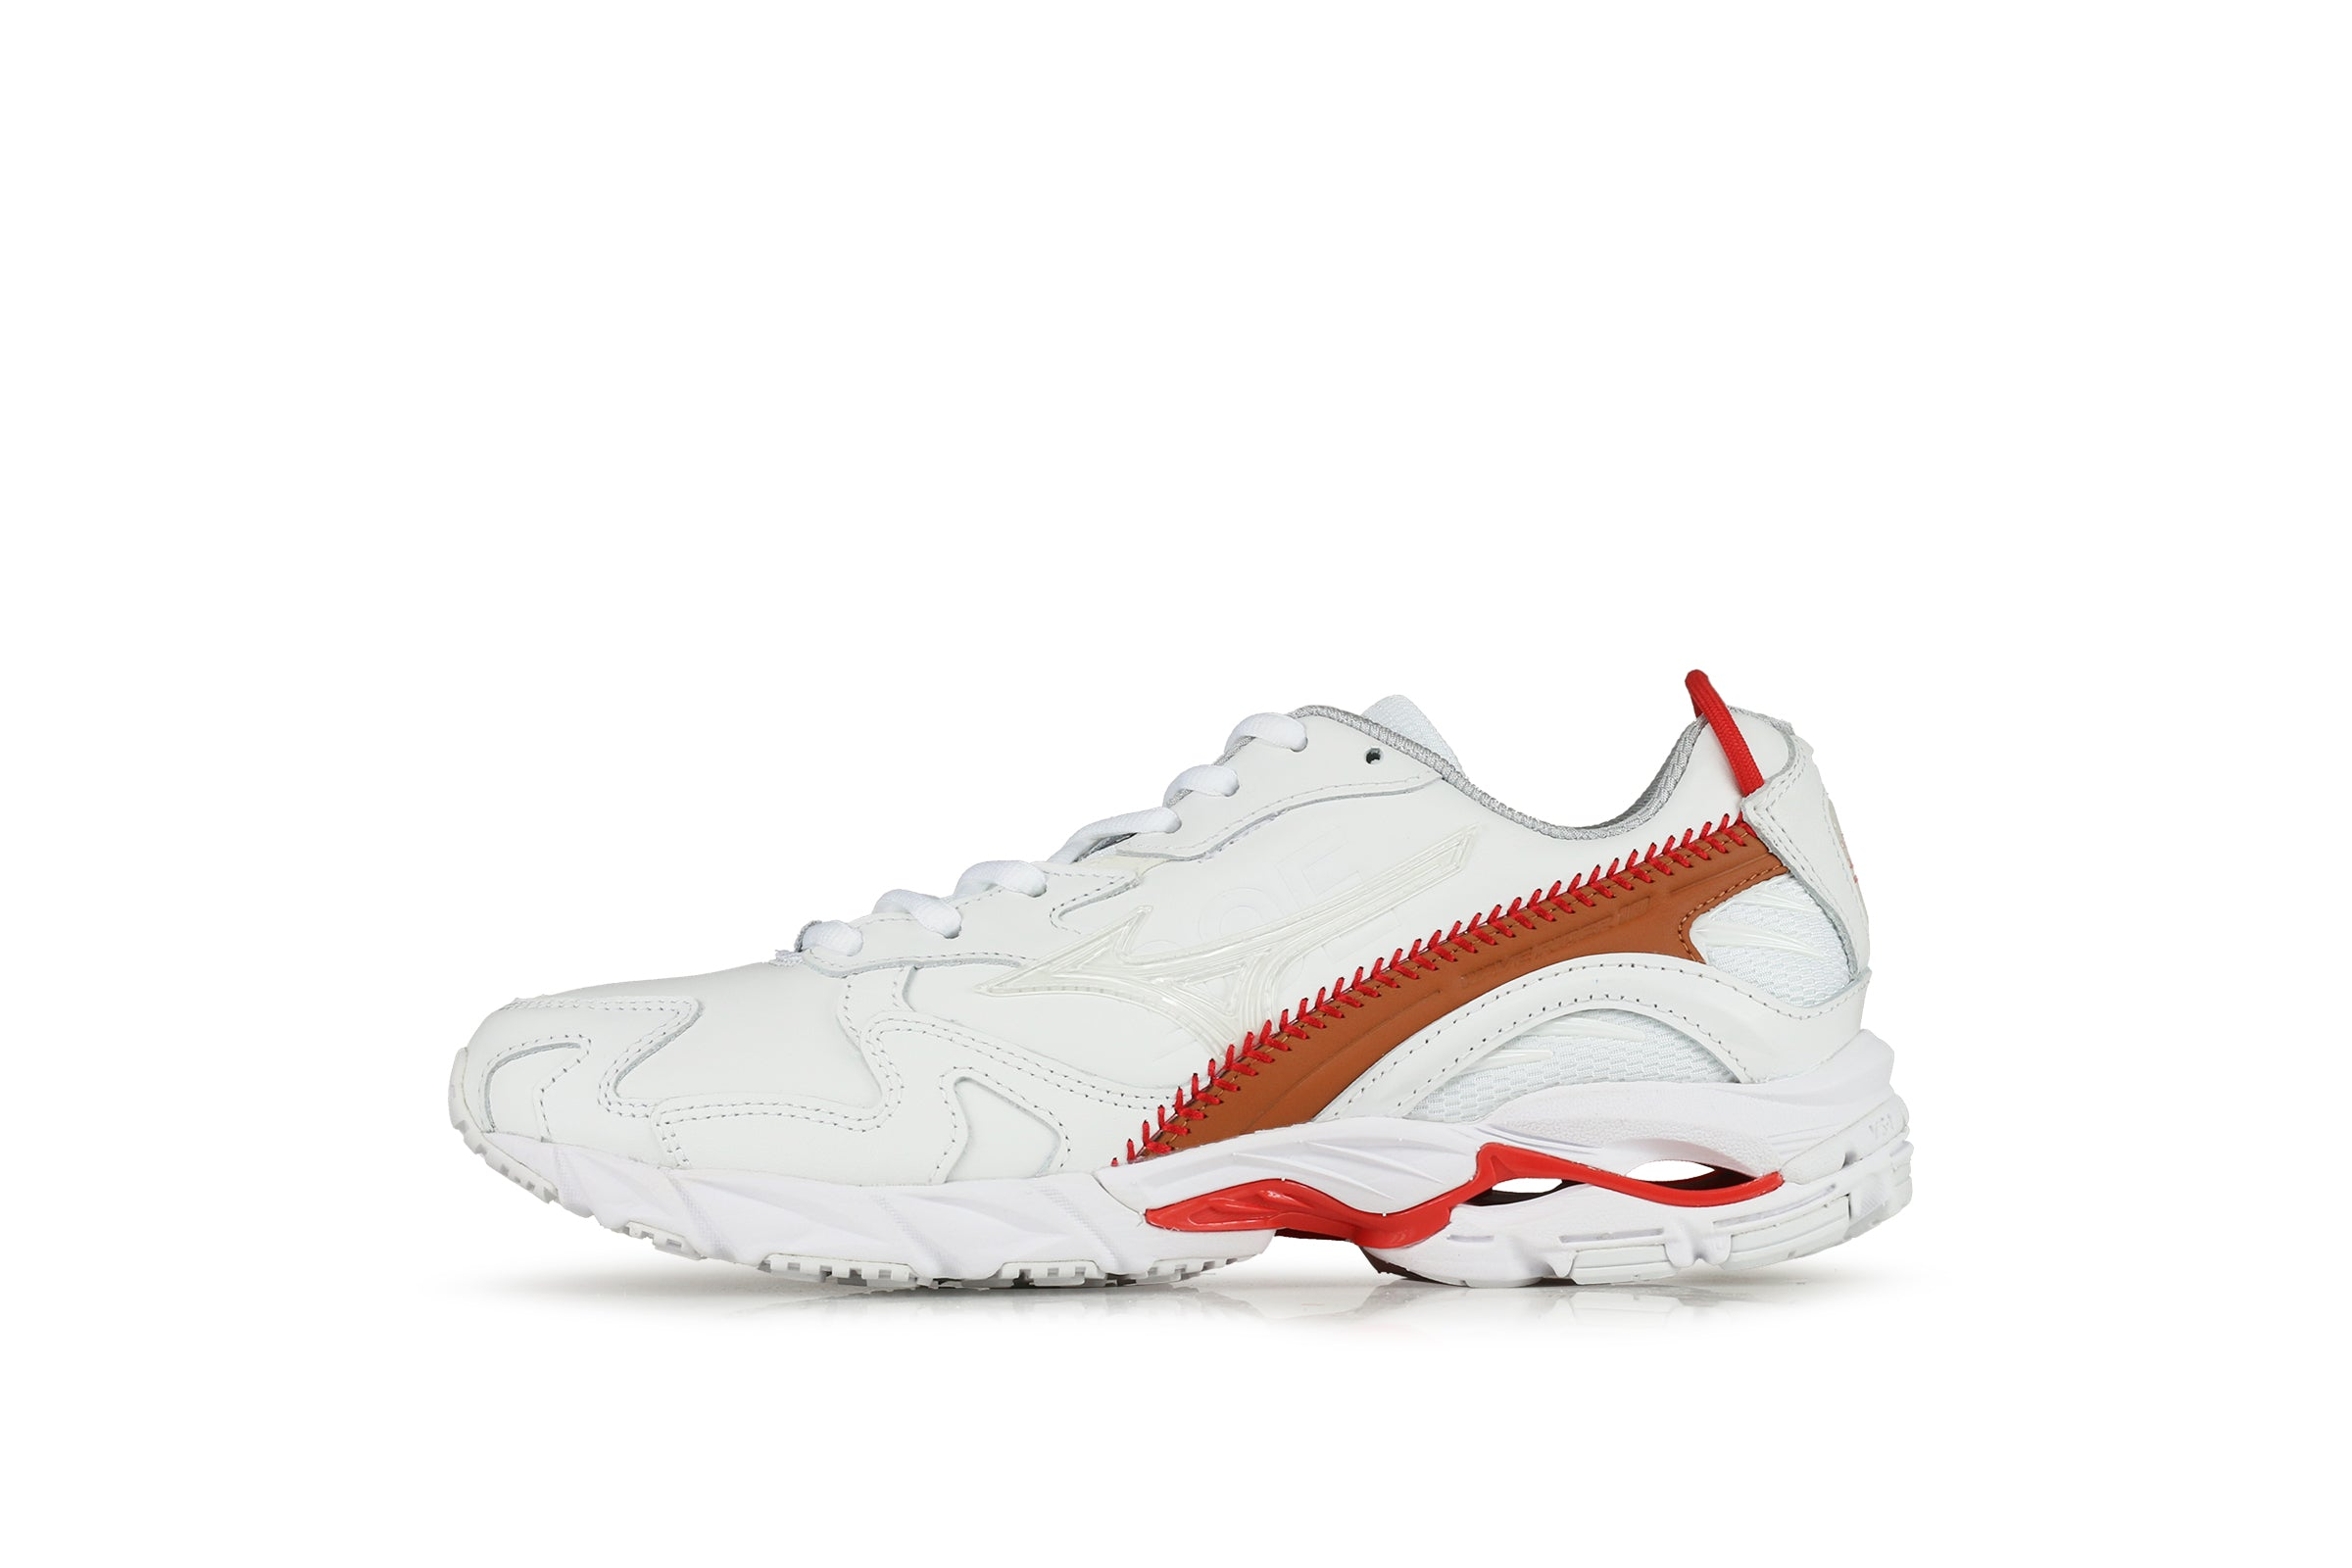 Mizuno Wave Rider 10 x DOE